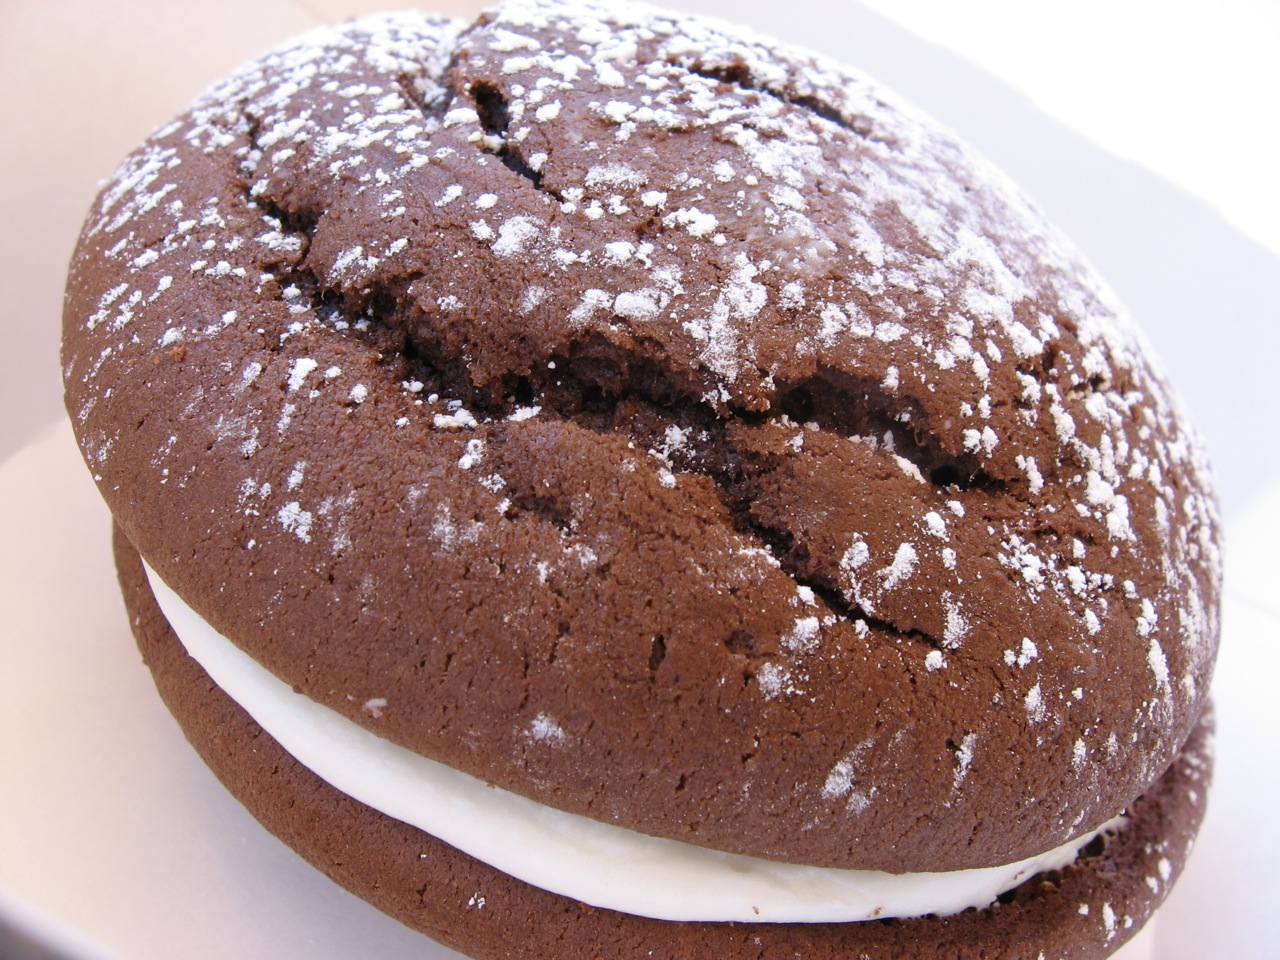 File:Whoopie pie with dusting of confectioner's sugar.jpg ...